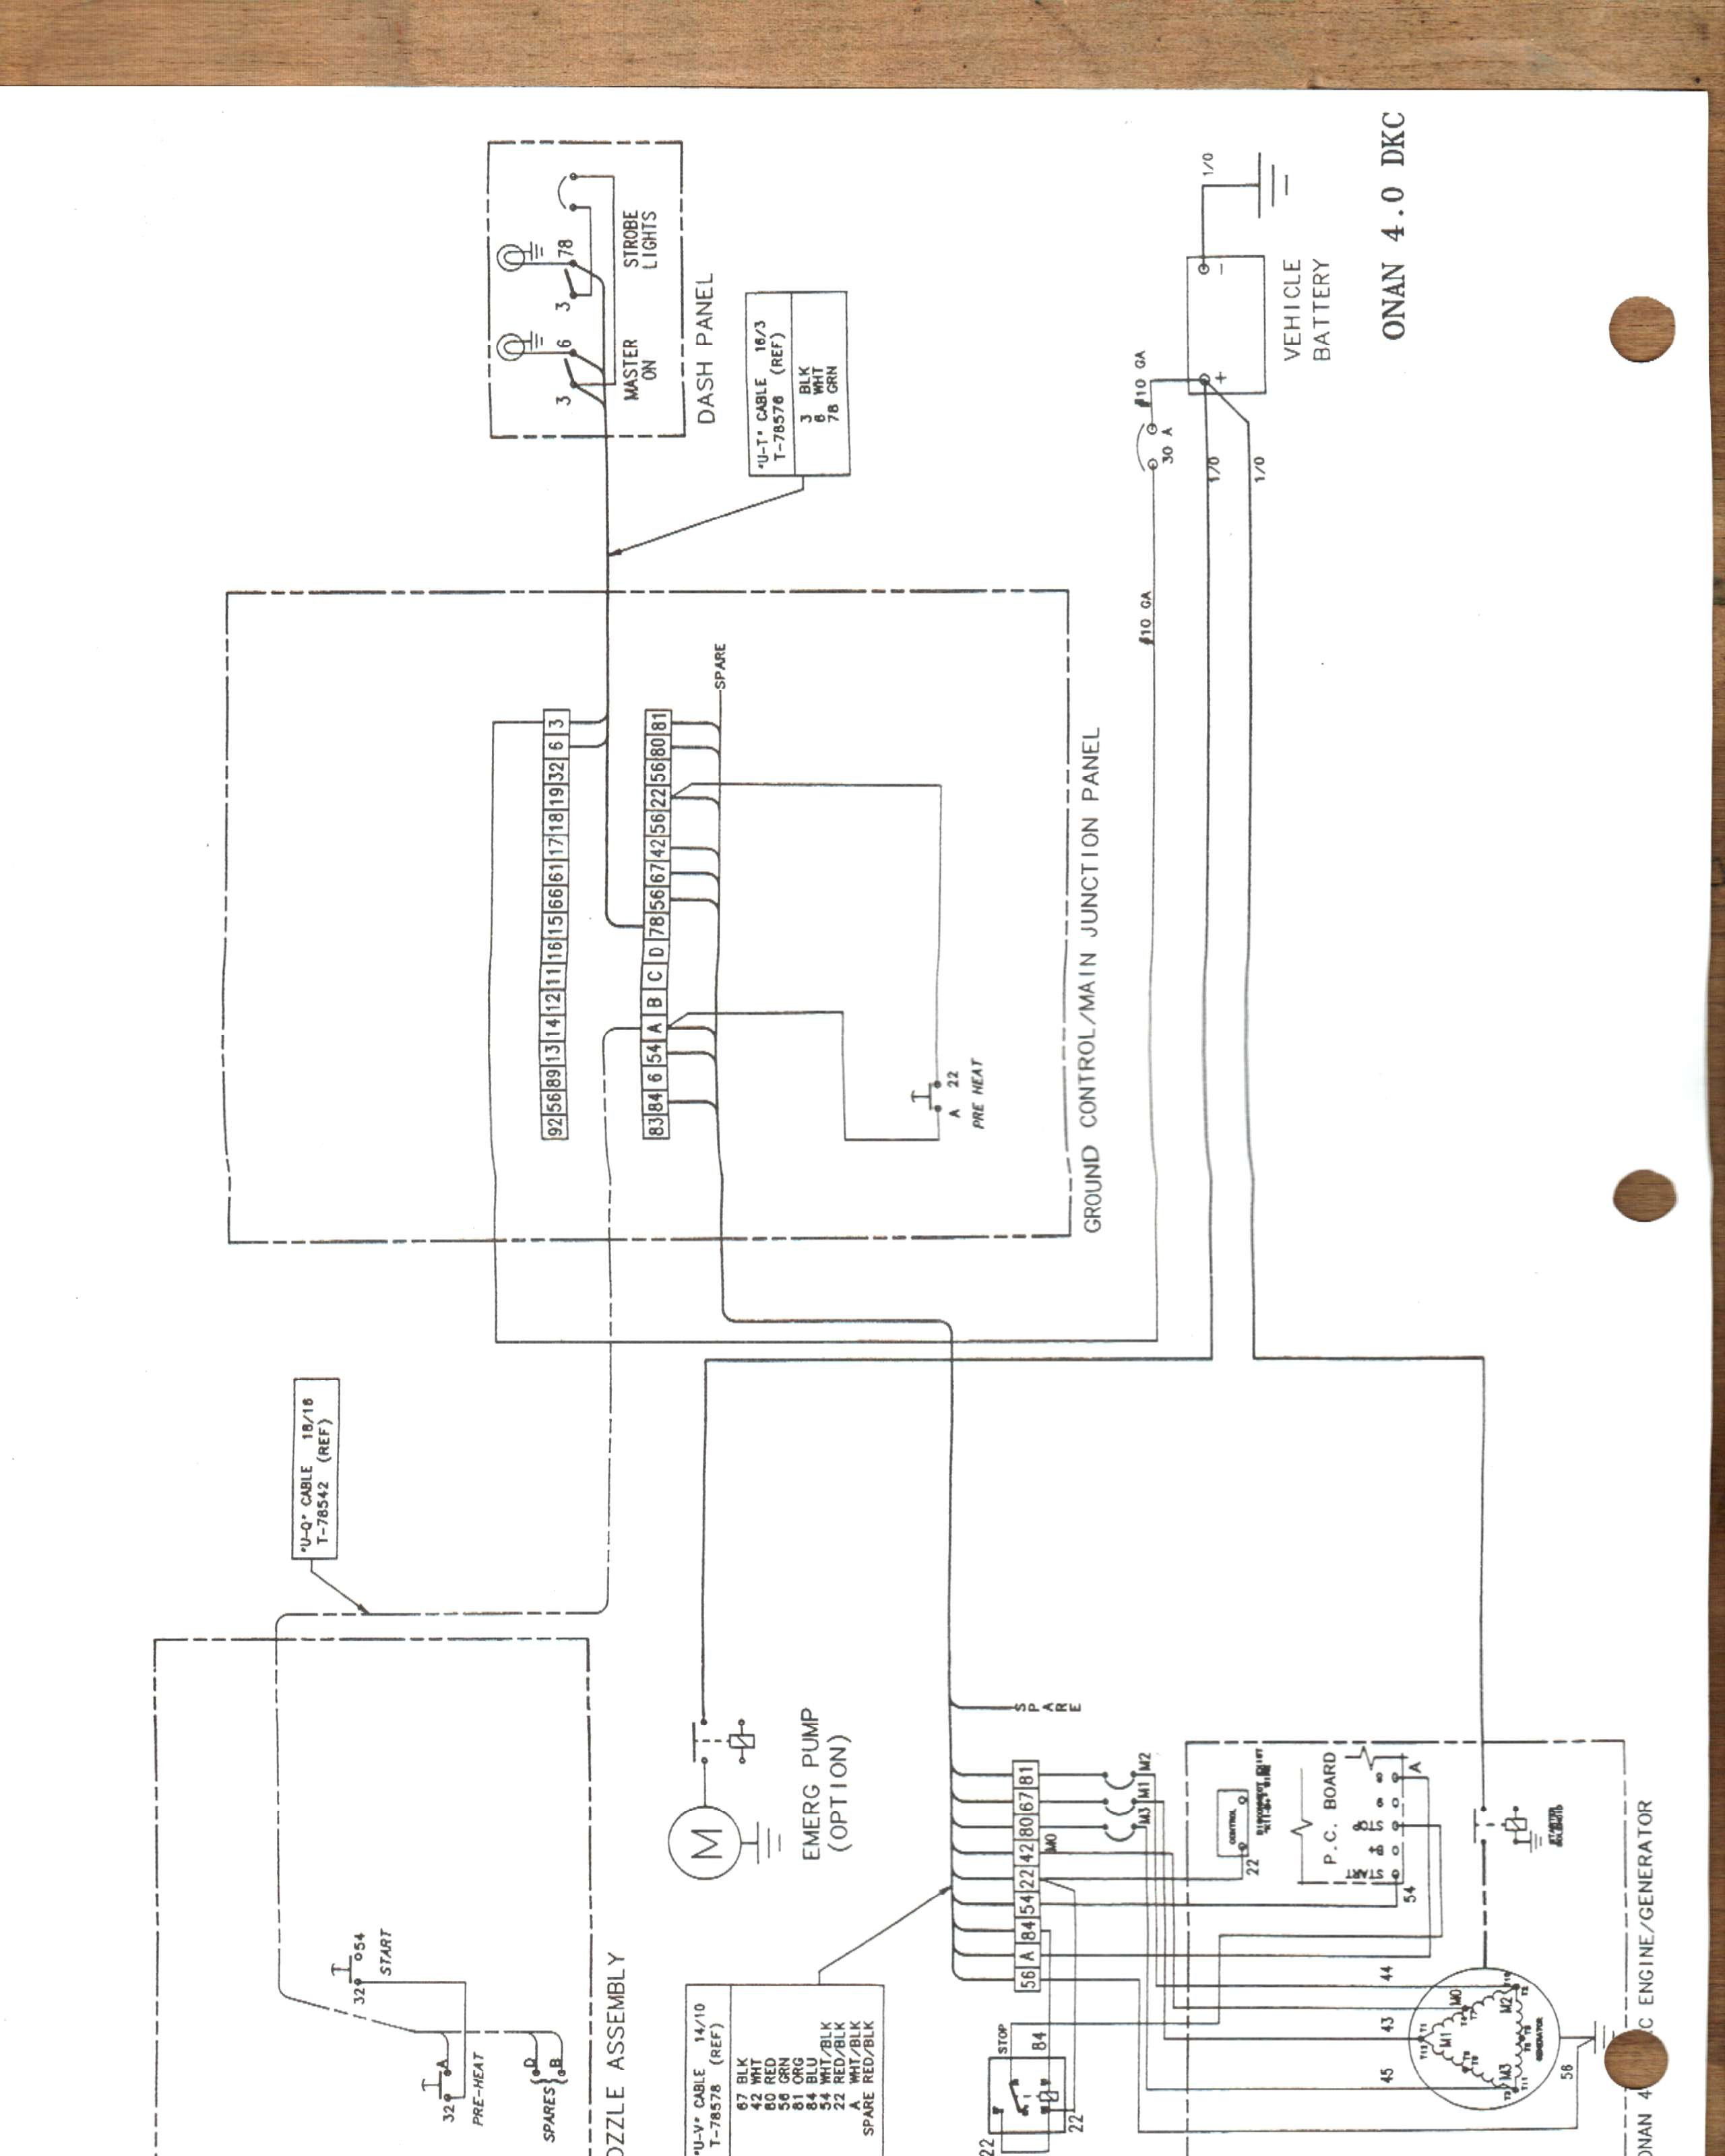 Telsta 28c wiring diagram